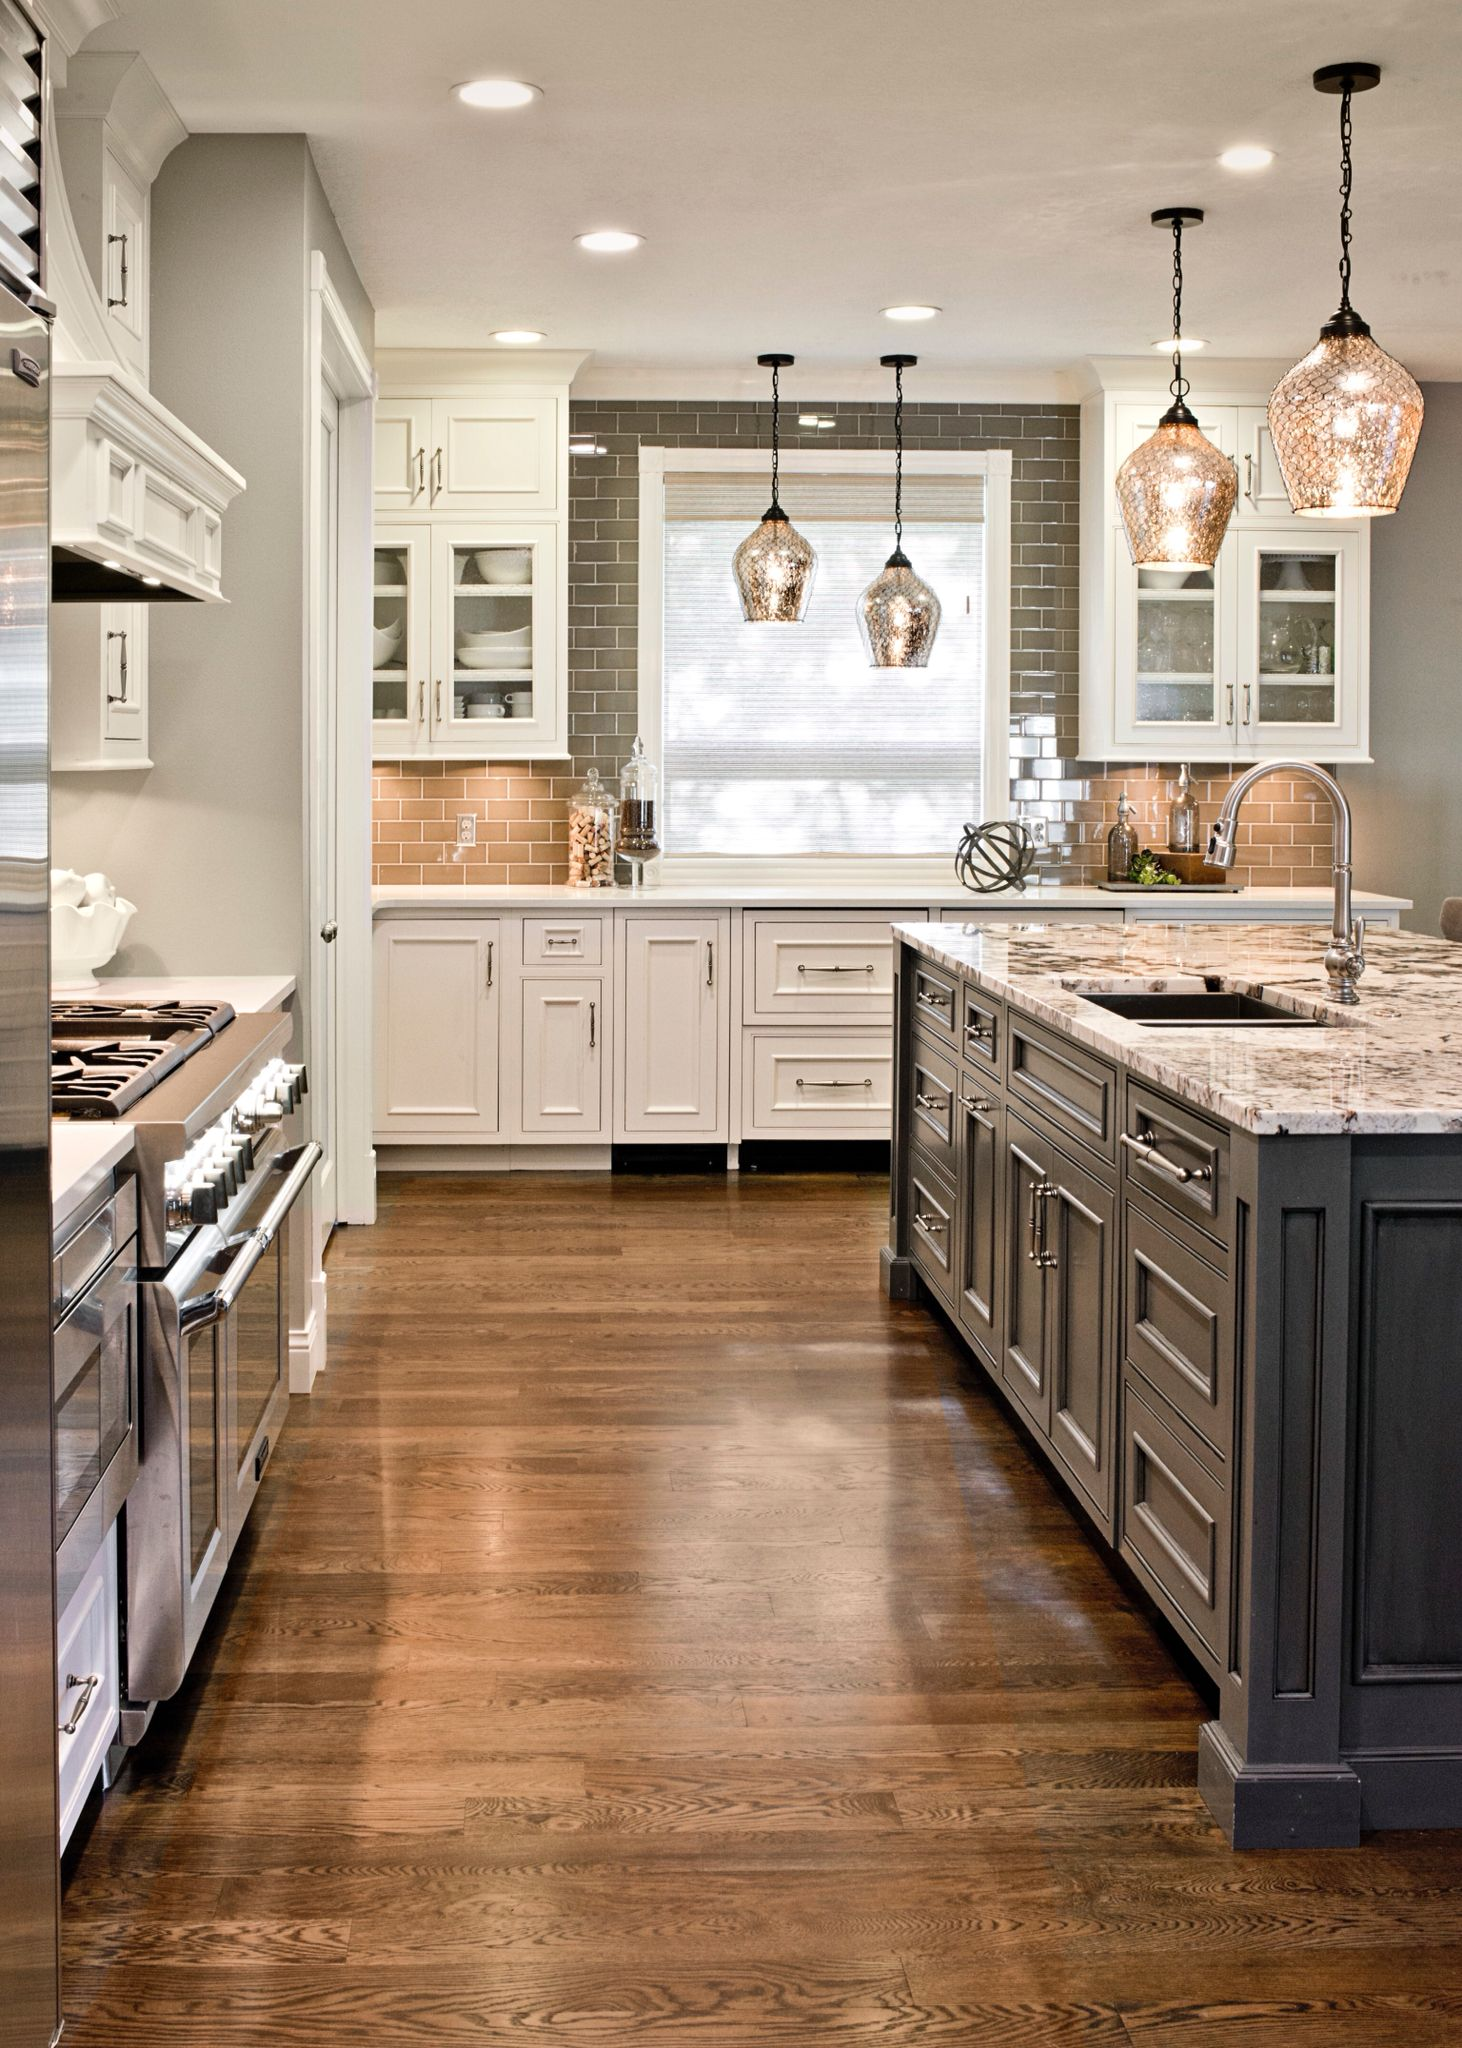 Download Wallpaper What Flooring Looks Best With White Cabinets